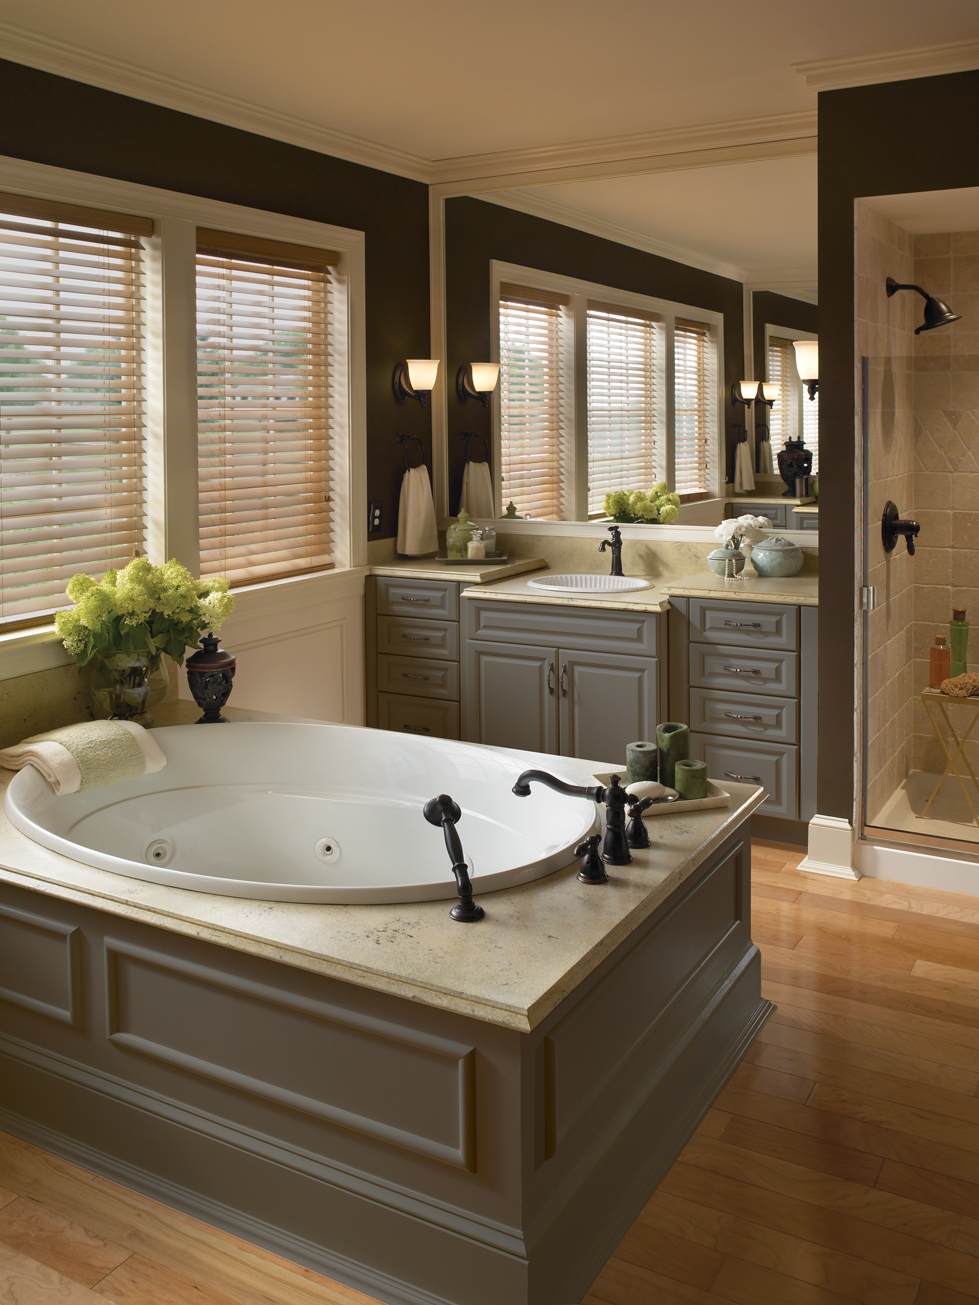 Armstrong bathroom cabinets -